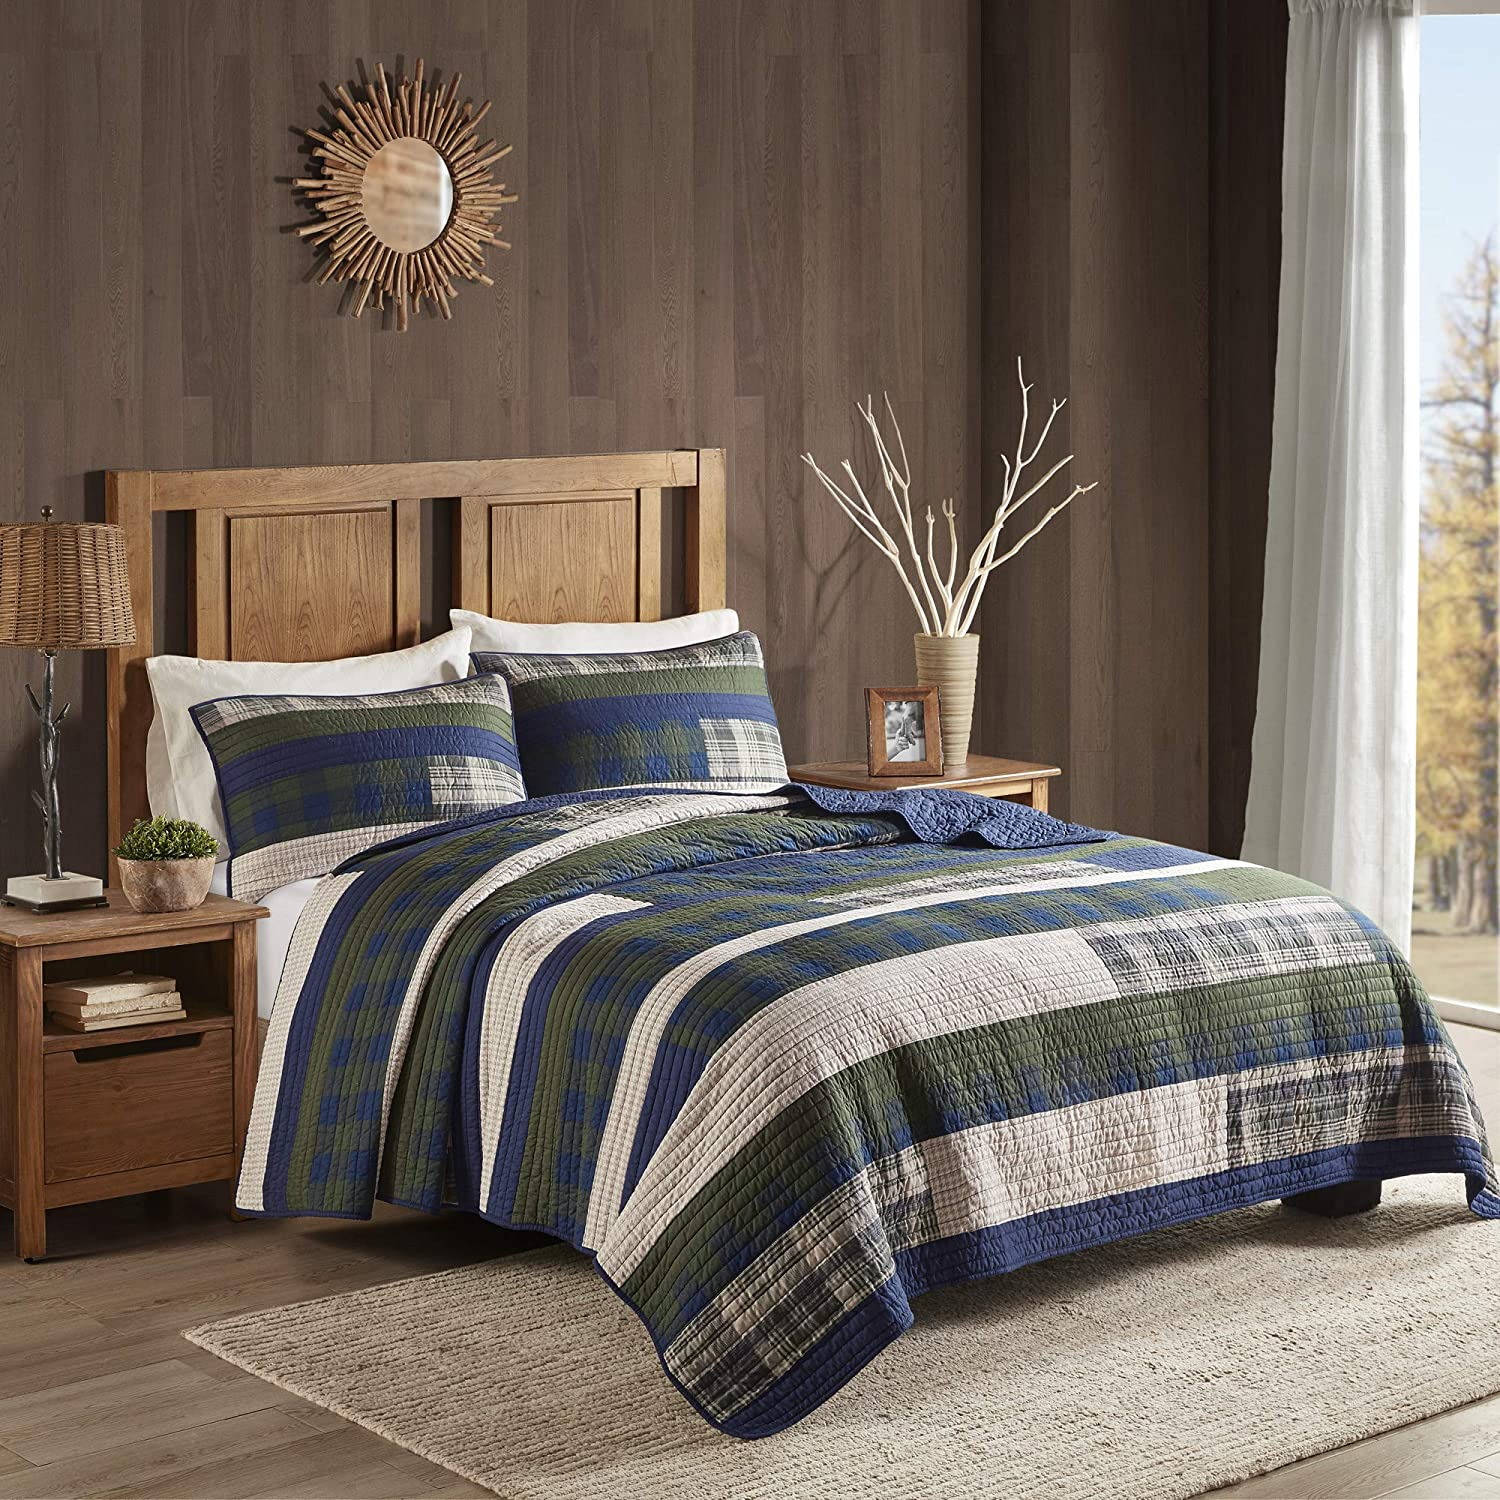 """Woolrich 100% Cotton Quilt Reversible Plaid Cabin Lifestyle Design All Season, Breathable Coverlet Bedspread Bedding Set, Matching Shams, Full/Queen(92""""x96""""), Spruce Hill, Green 3 Piece"""